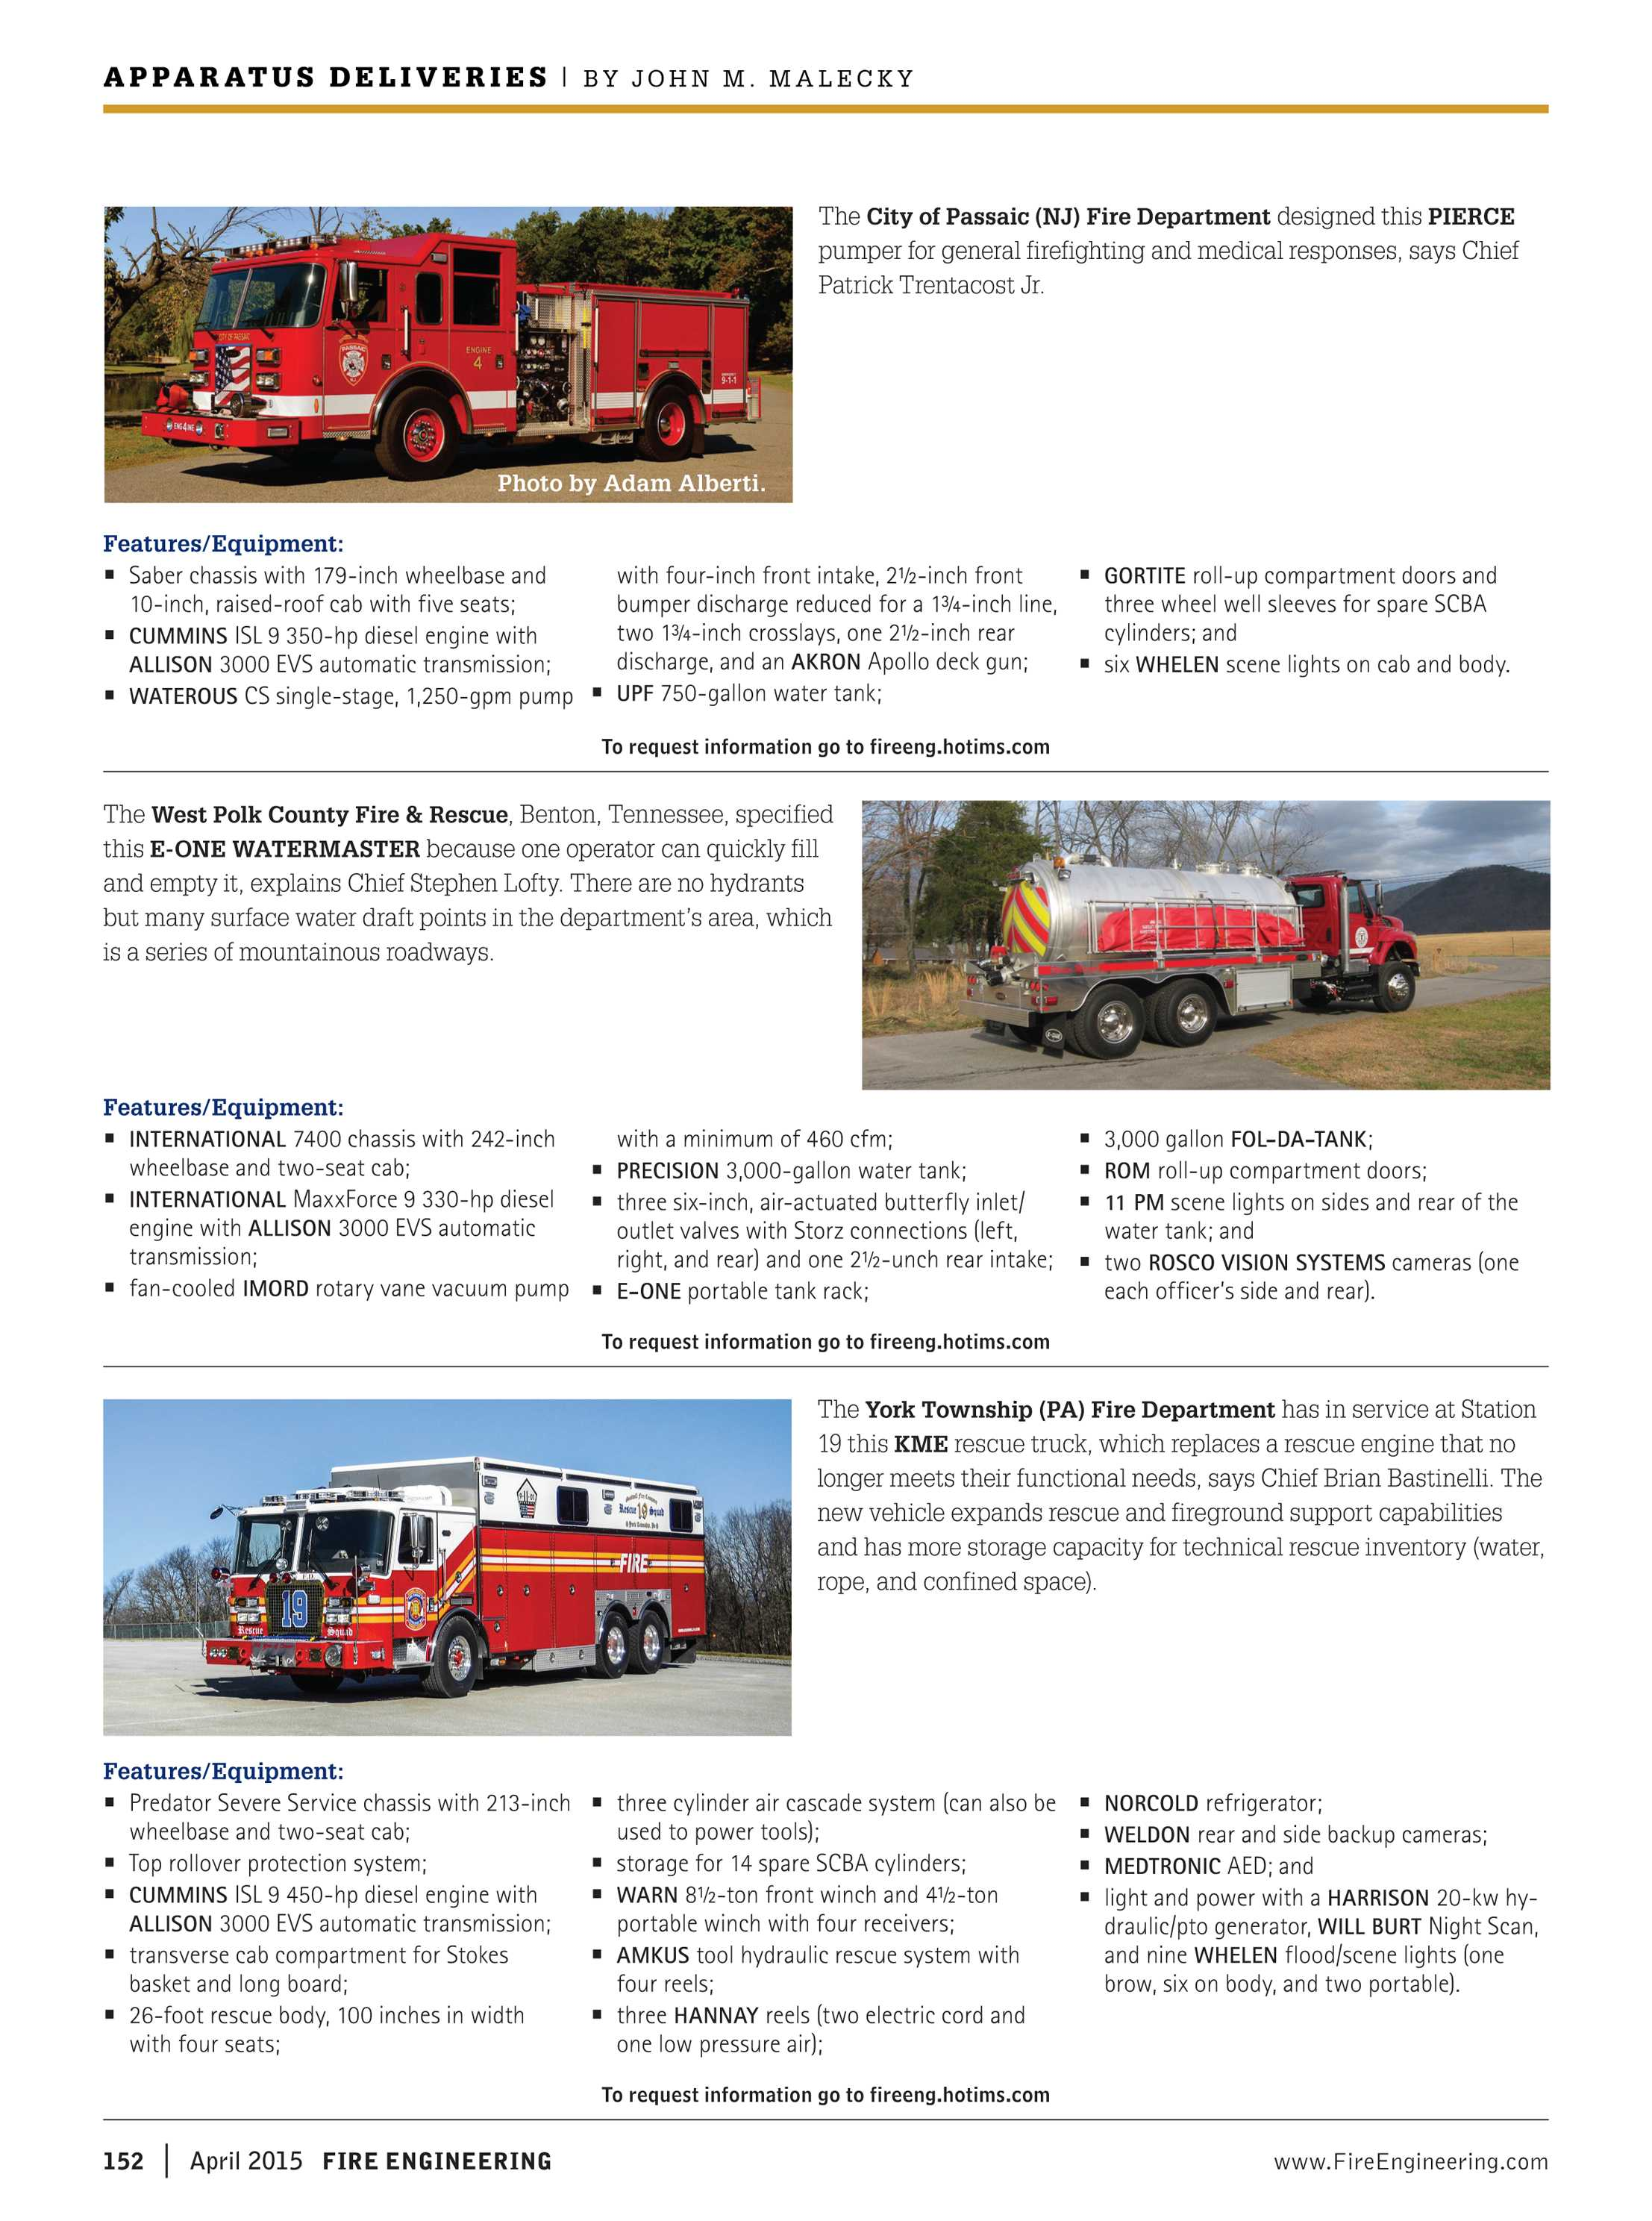 Fire Engineering - April 2015 - page 152